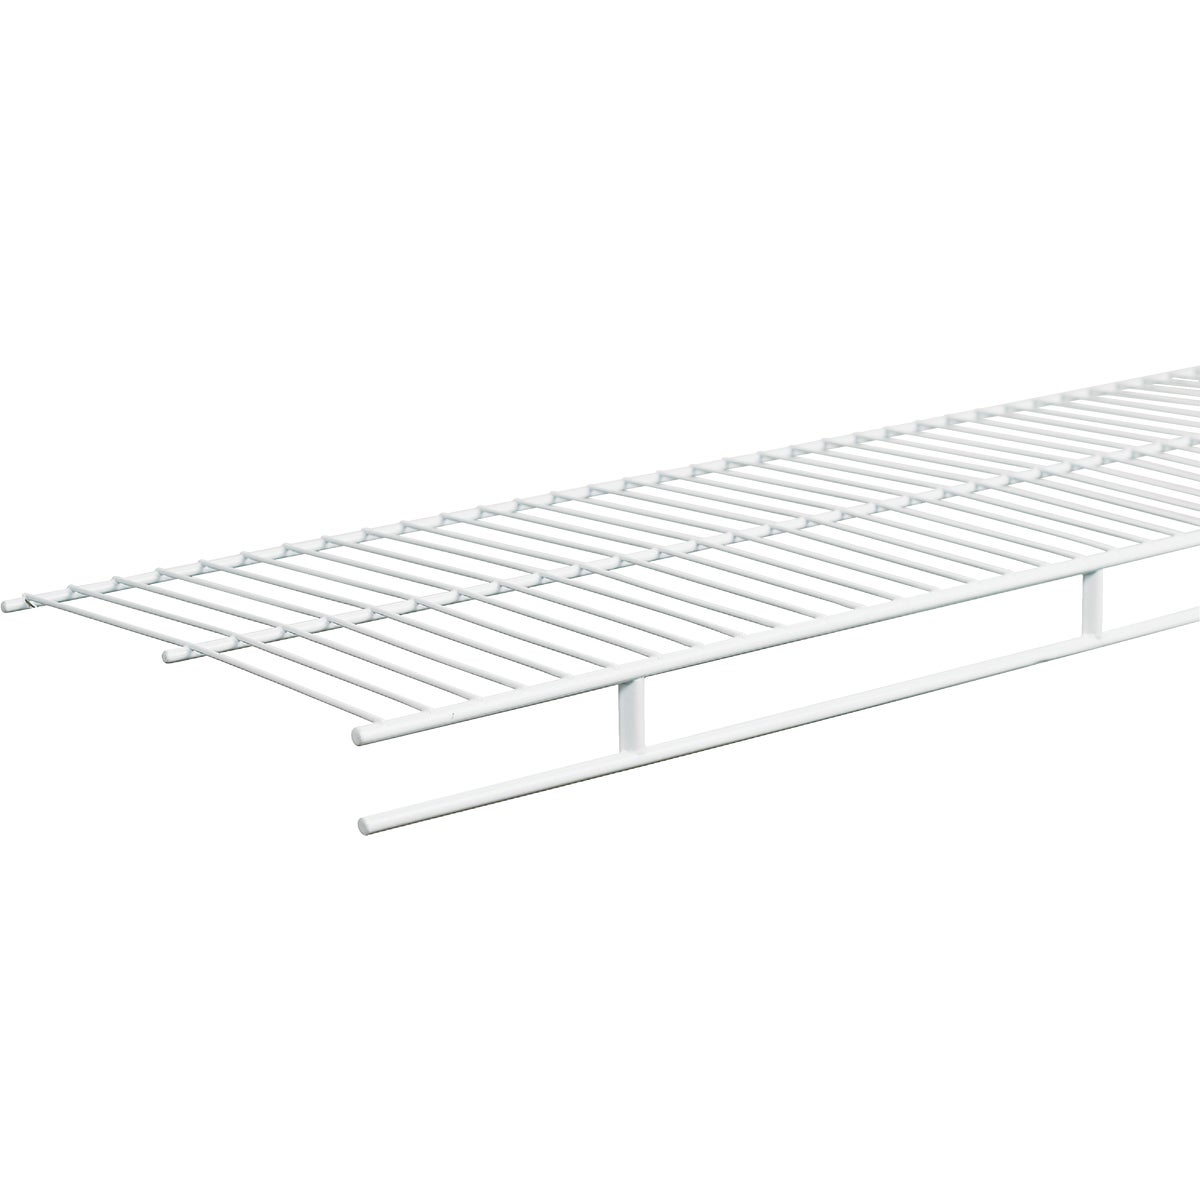 "4'X12"" S&R SHELF - 134100 by Closetmaid"